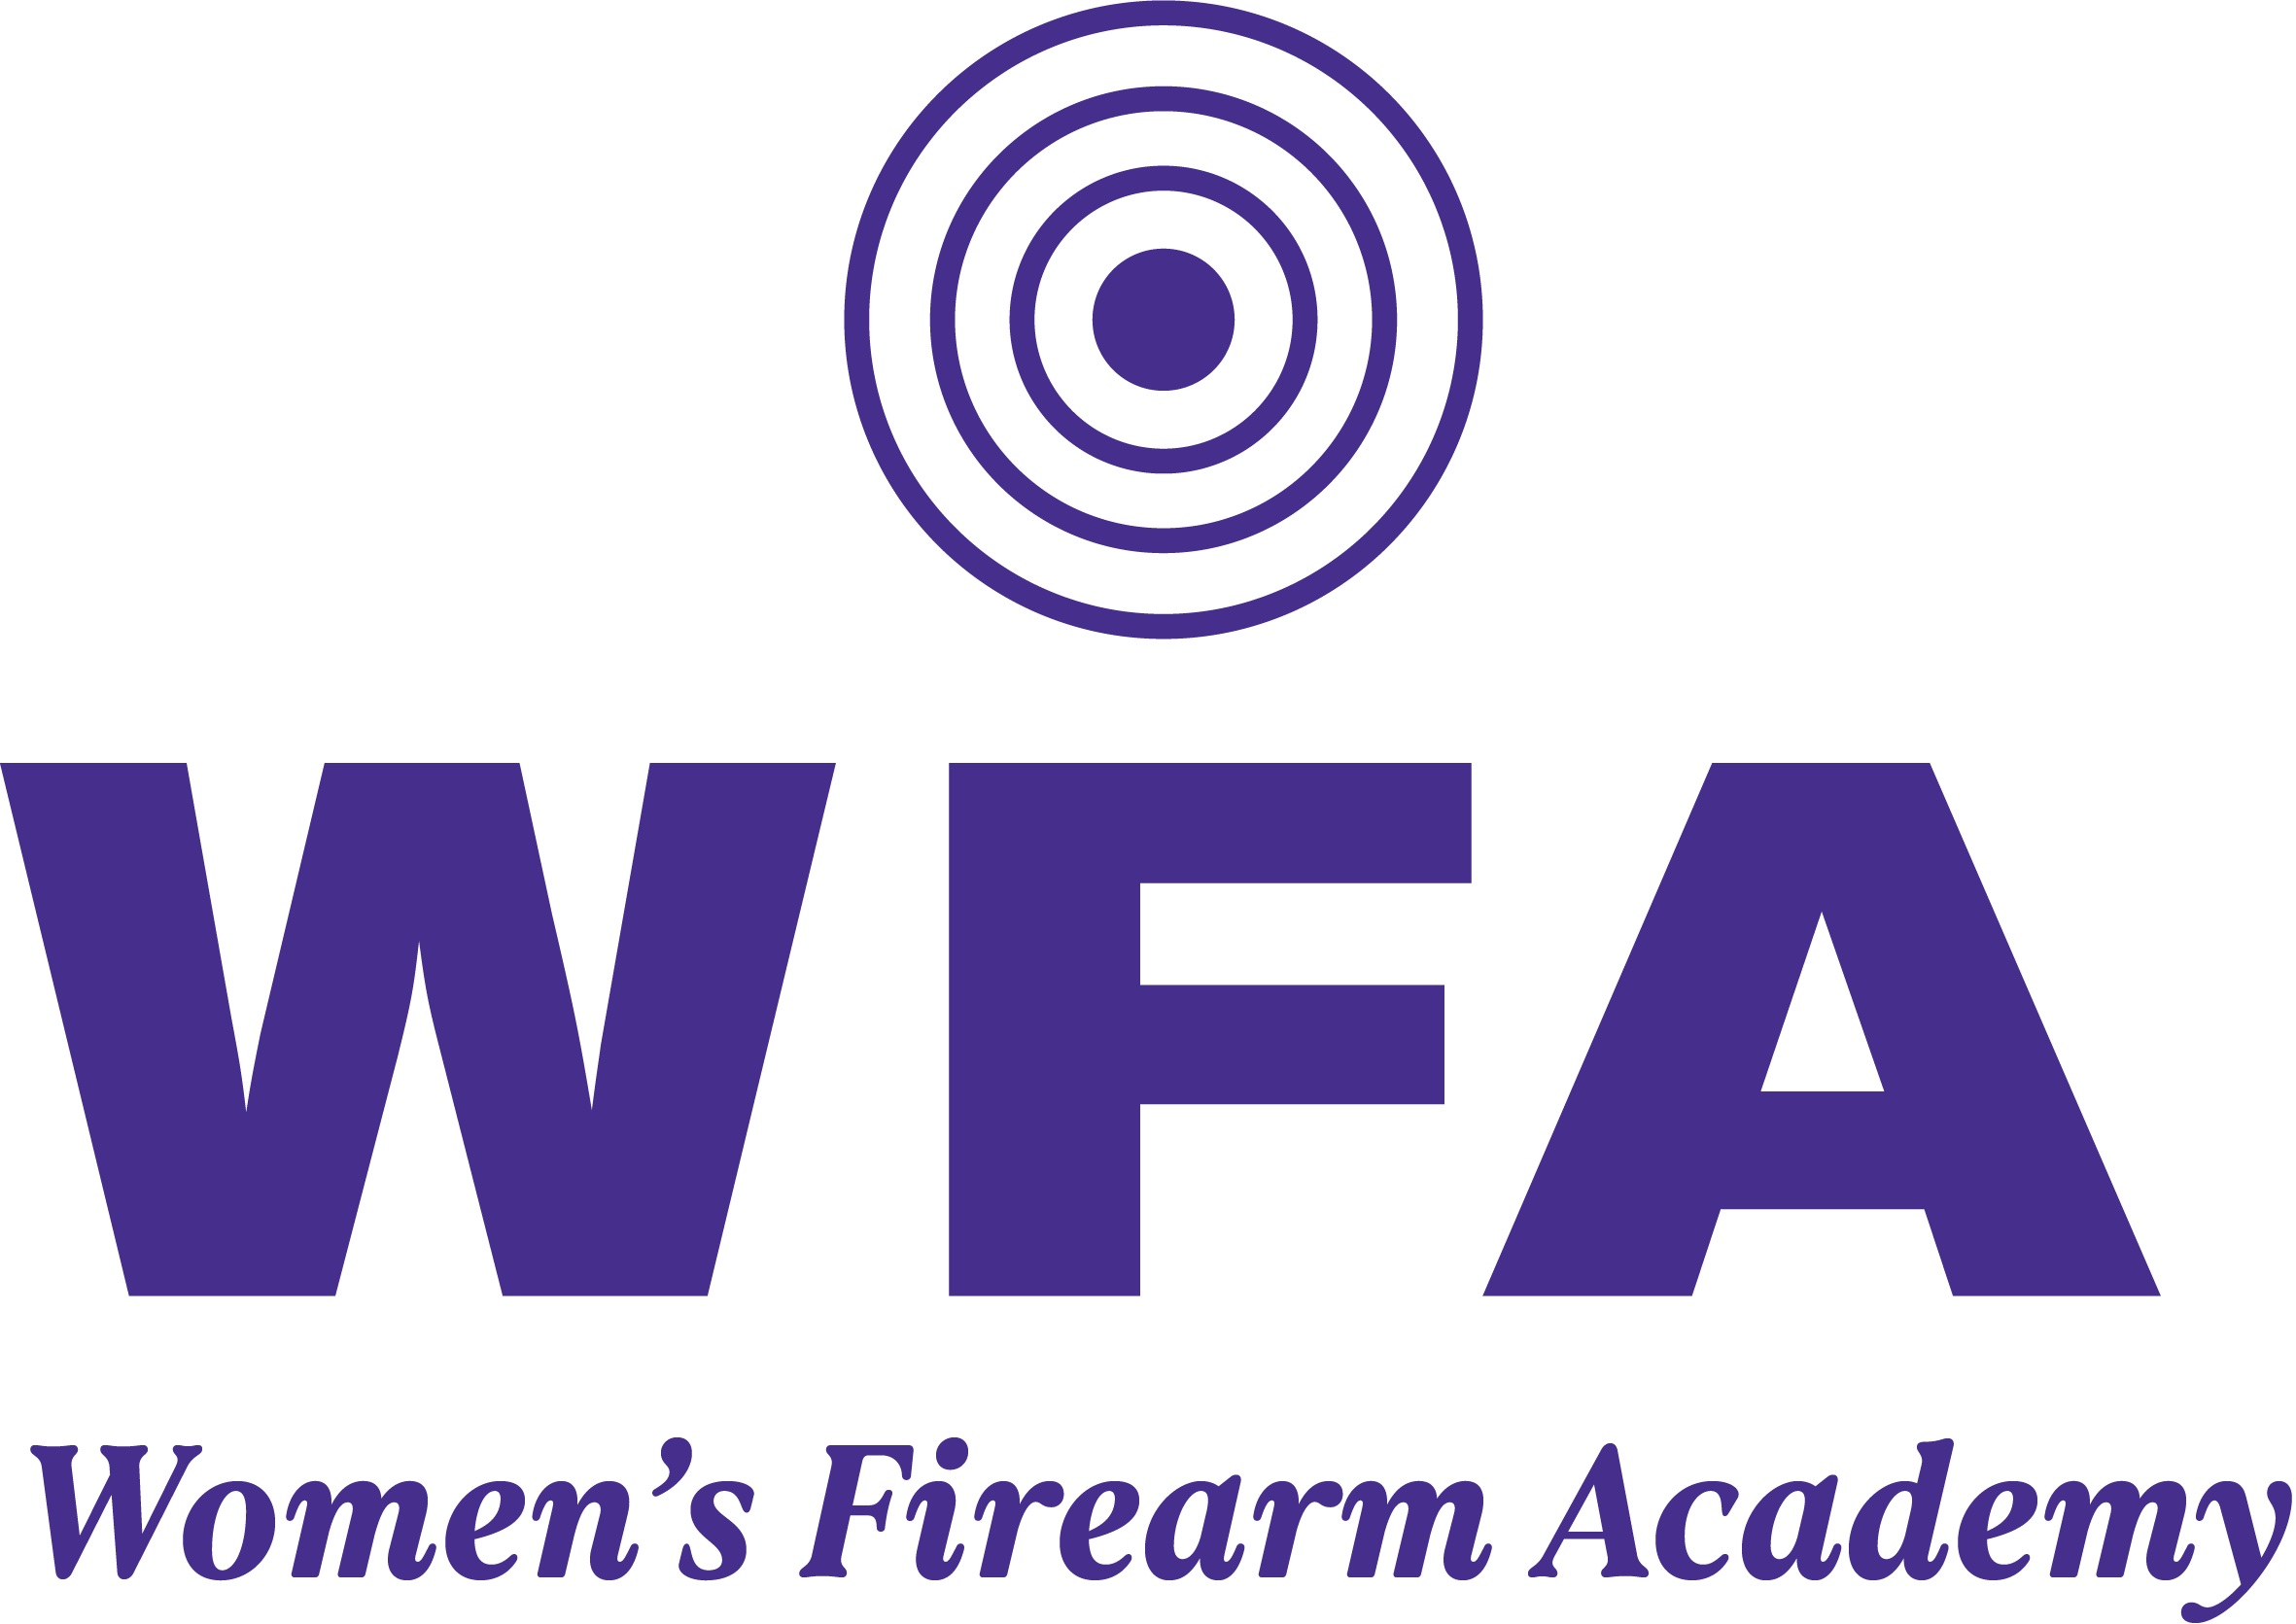 WFA_SecondaryLogotype_Purple.png